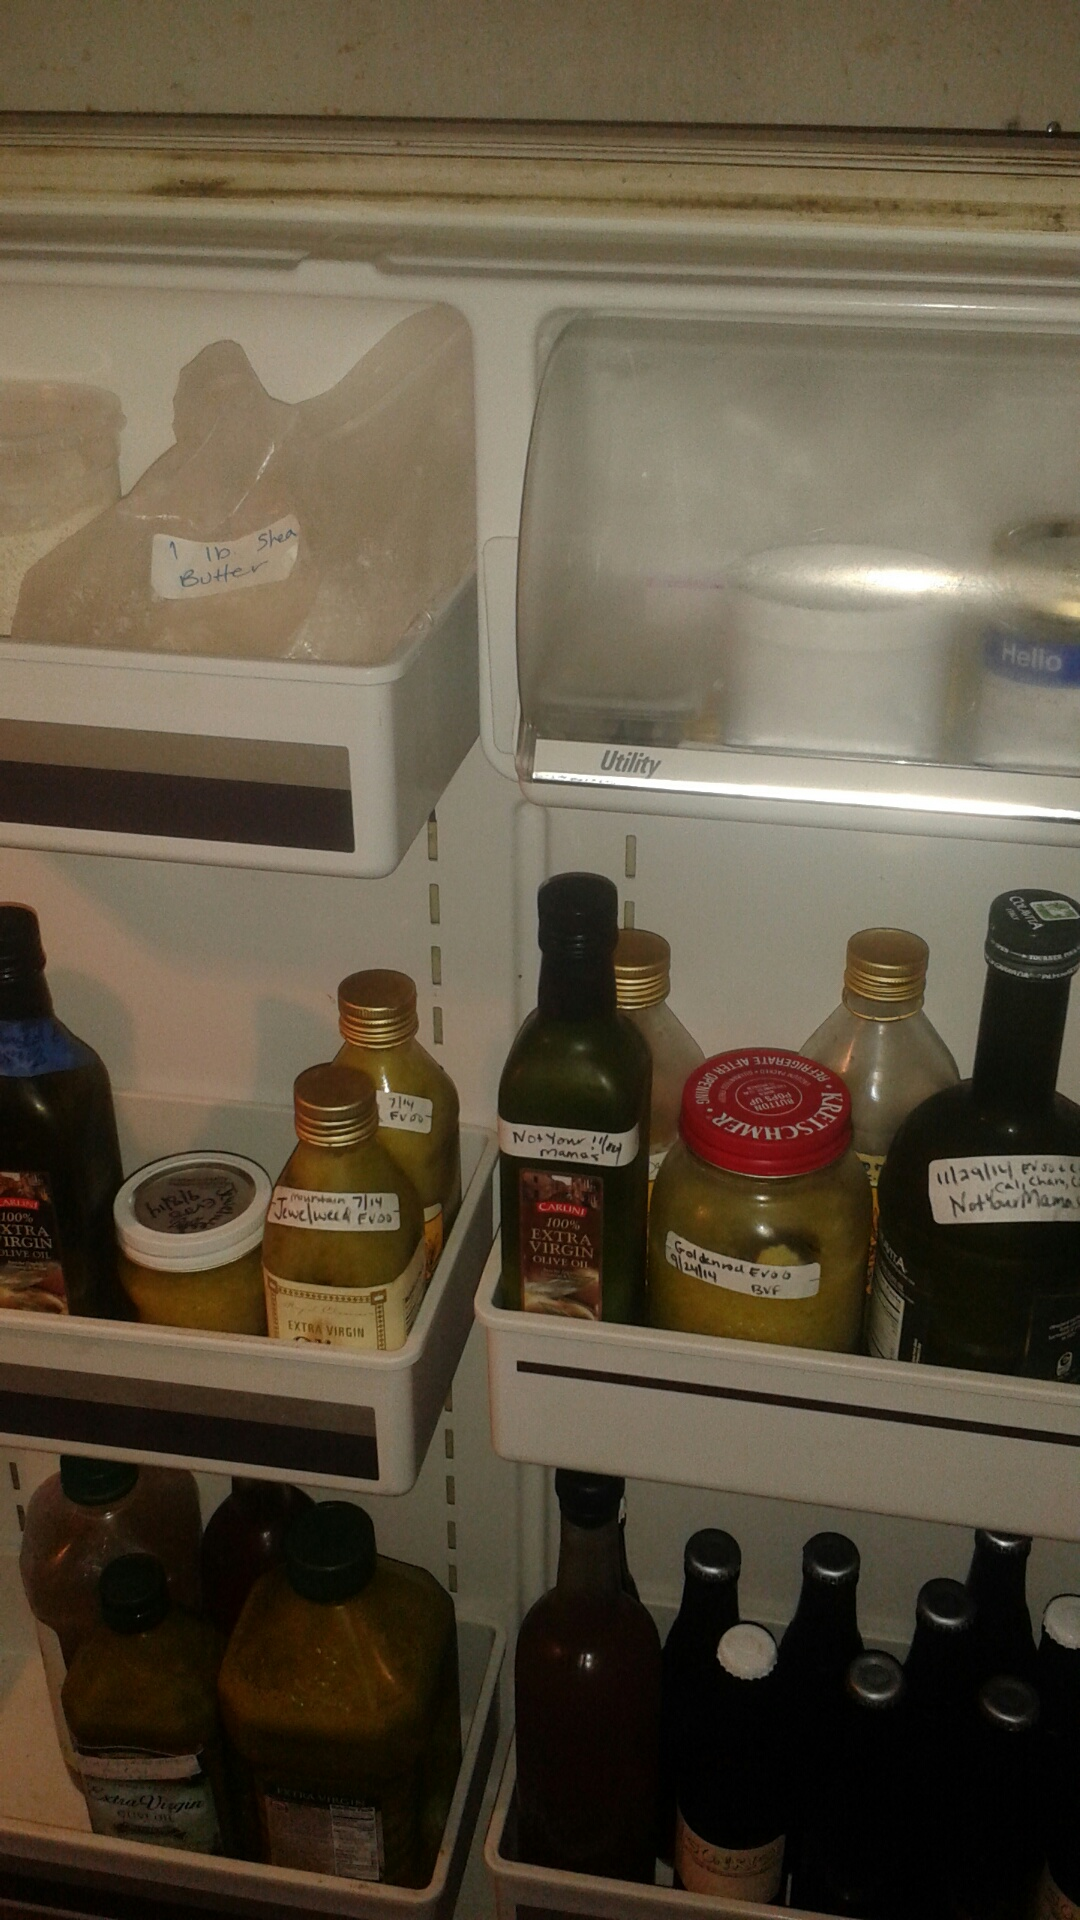 outside fridge door - salve oils